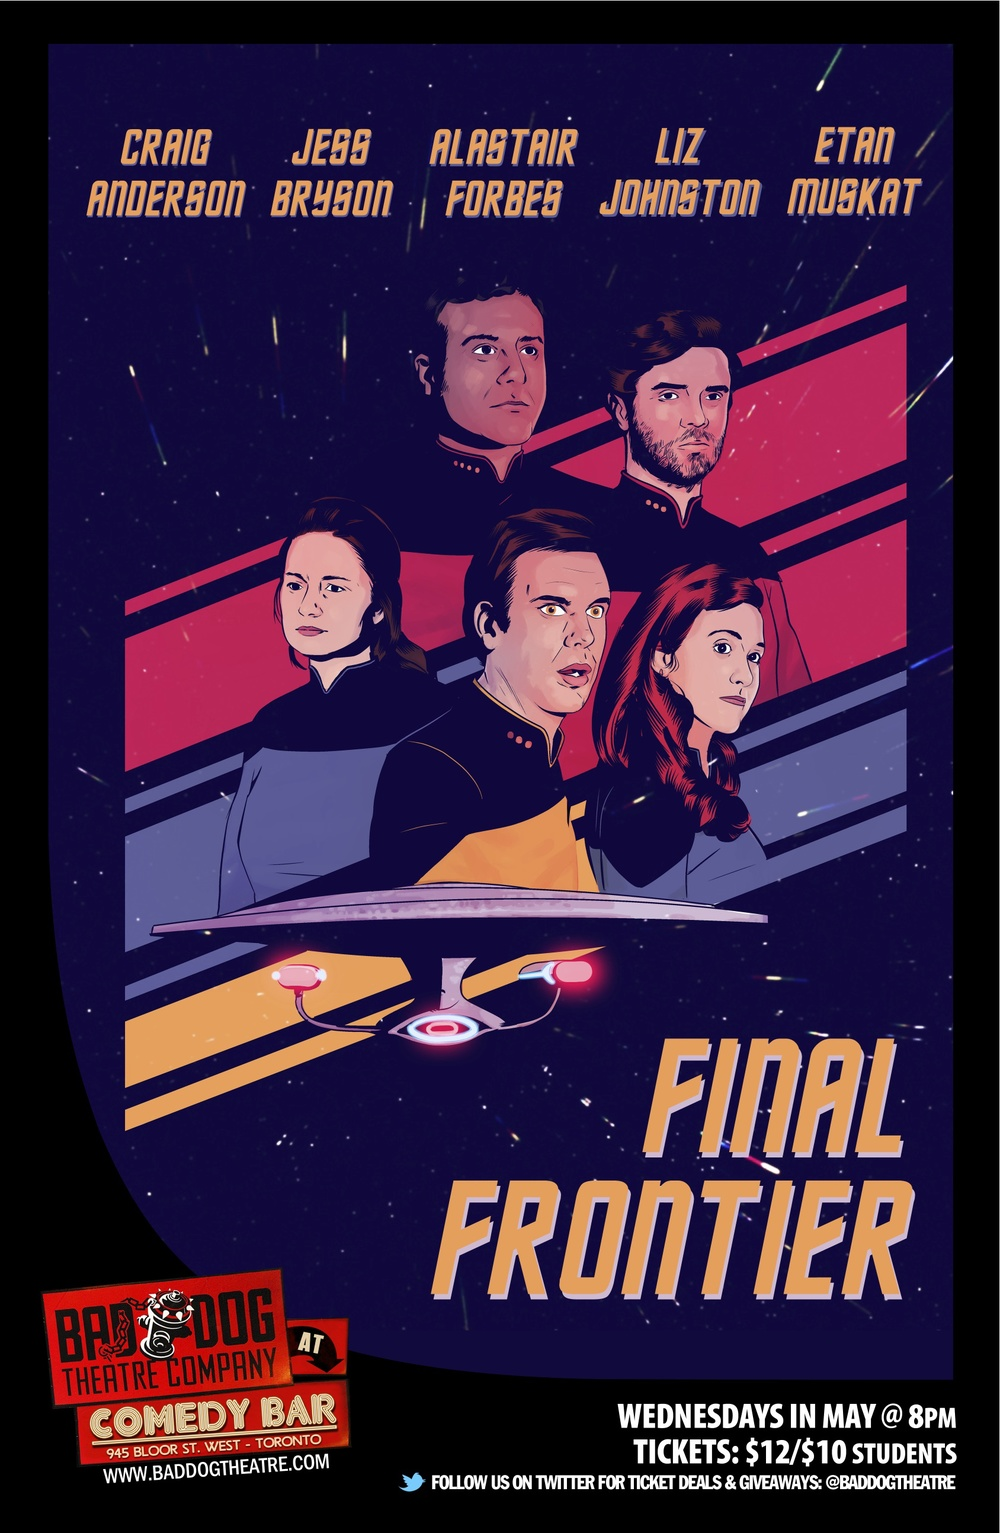 final frontier illustrated.jpg